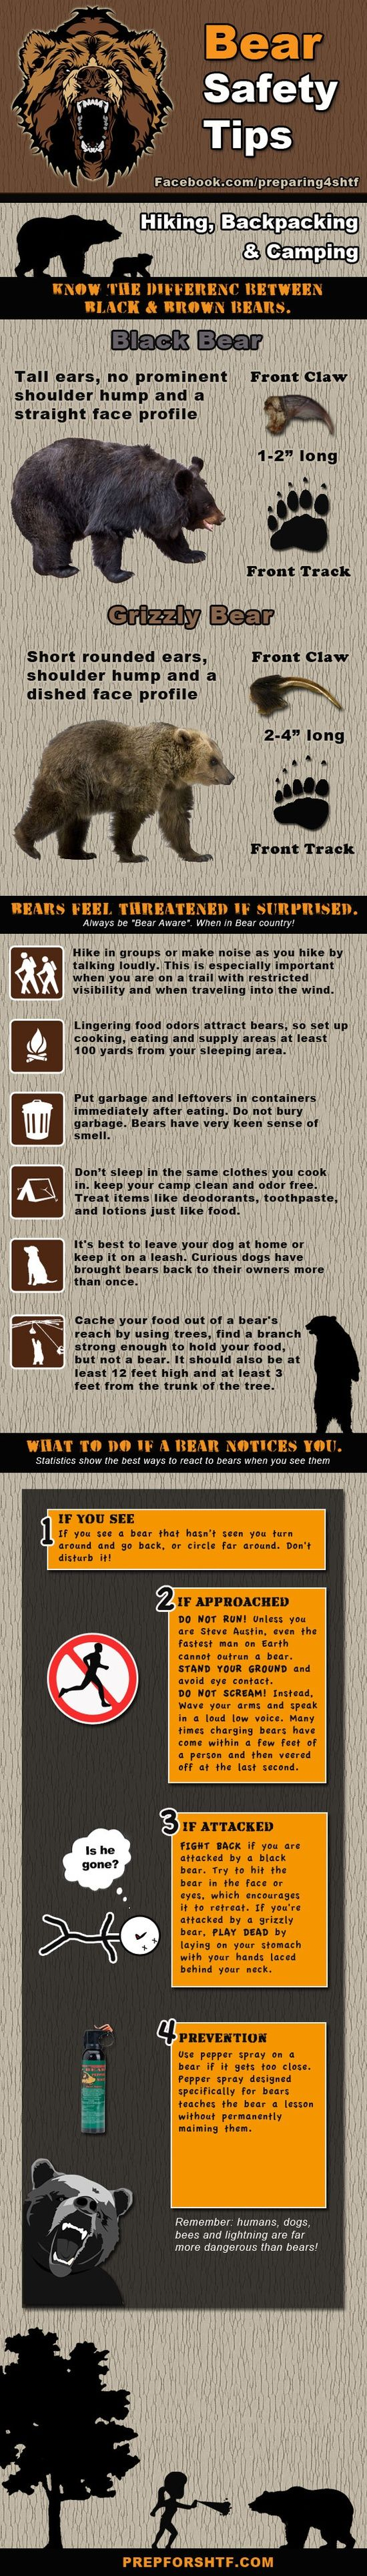 Bear Safety Tips - know the difference between black bears and grizzly bears;  if approached by a bear, DO NOT RUN and avoid eye contact;  if a black bear attacks, try to hit it in the face or eyes to get it to back off:  if a grizzly attacks, roll over and play dead